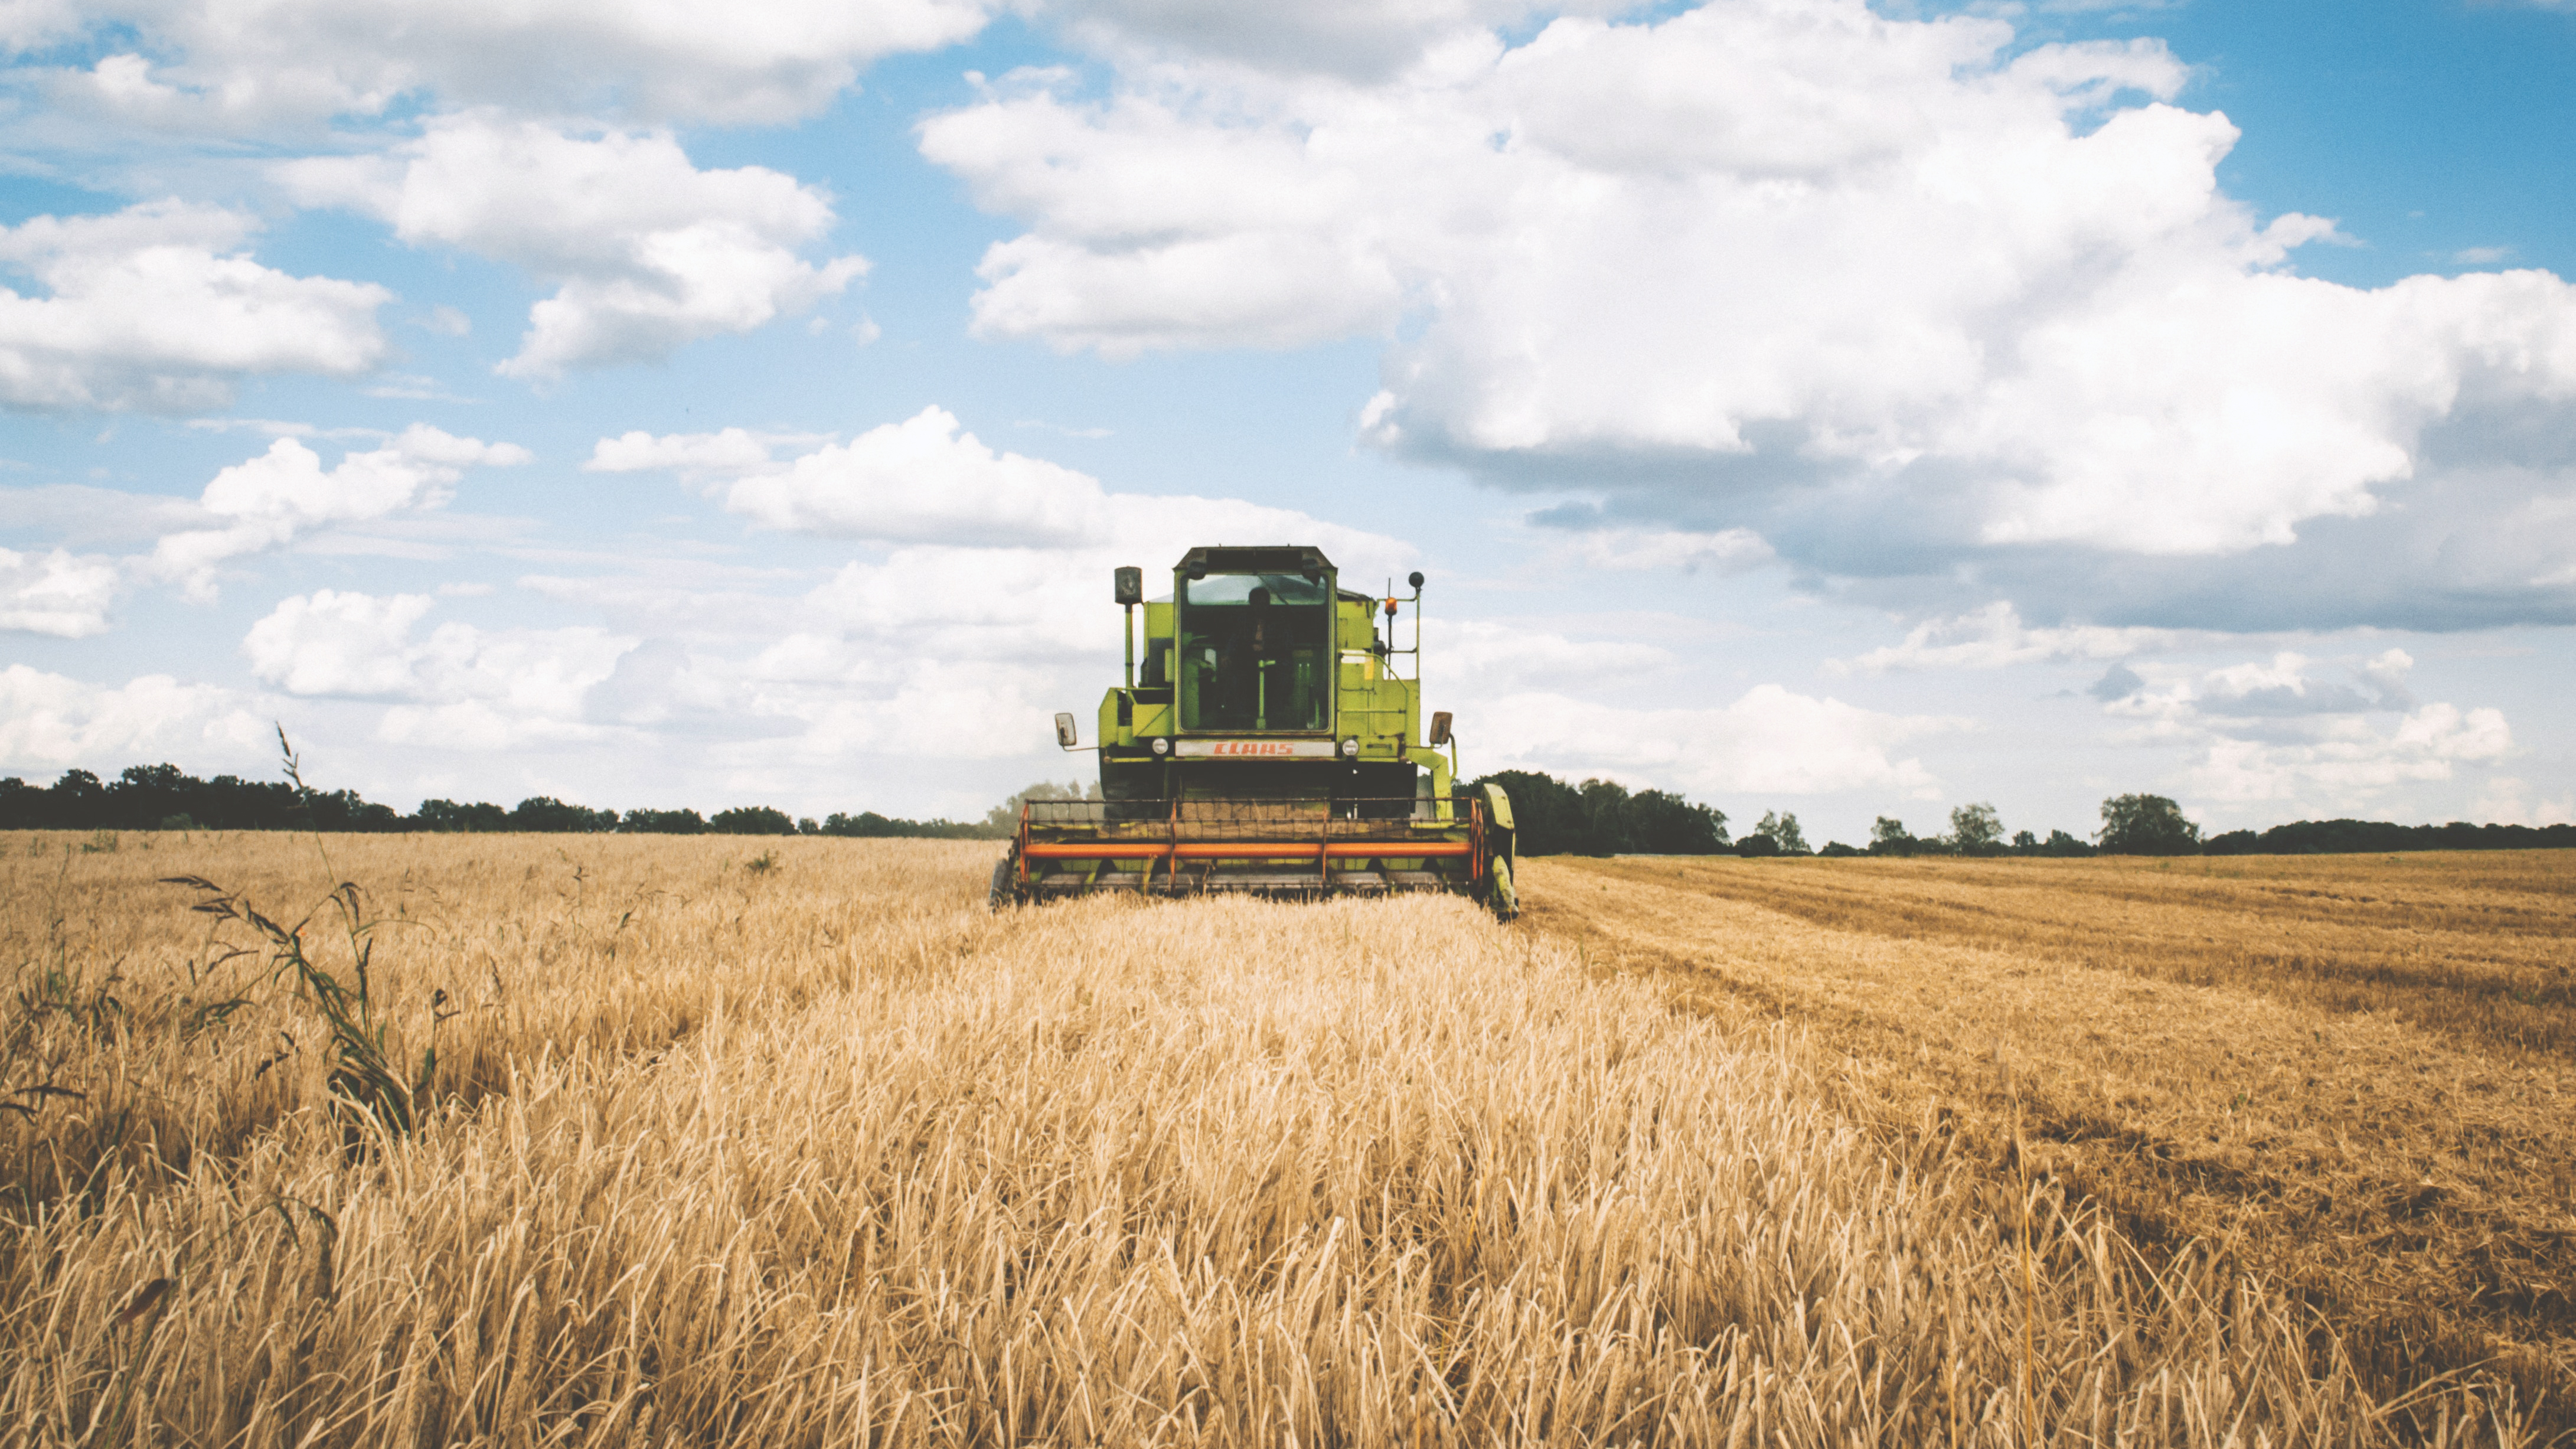 Image of a harvester collecting grains